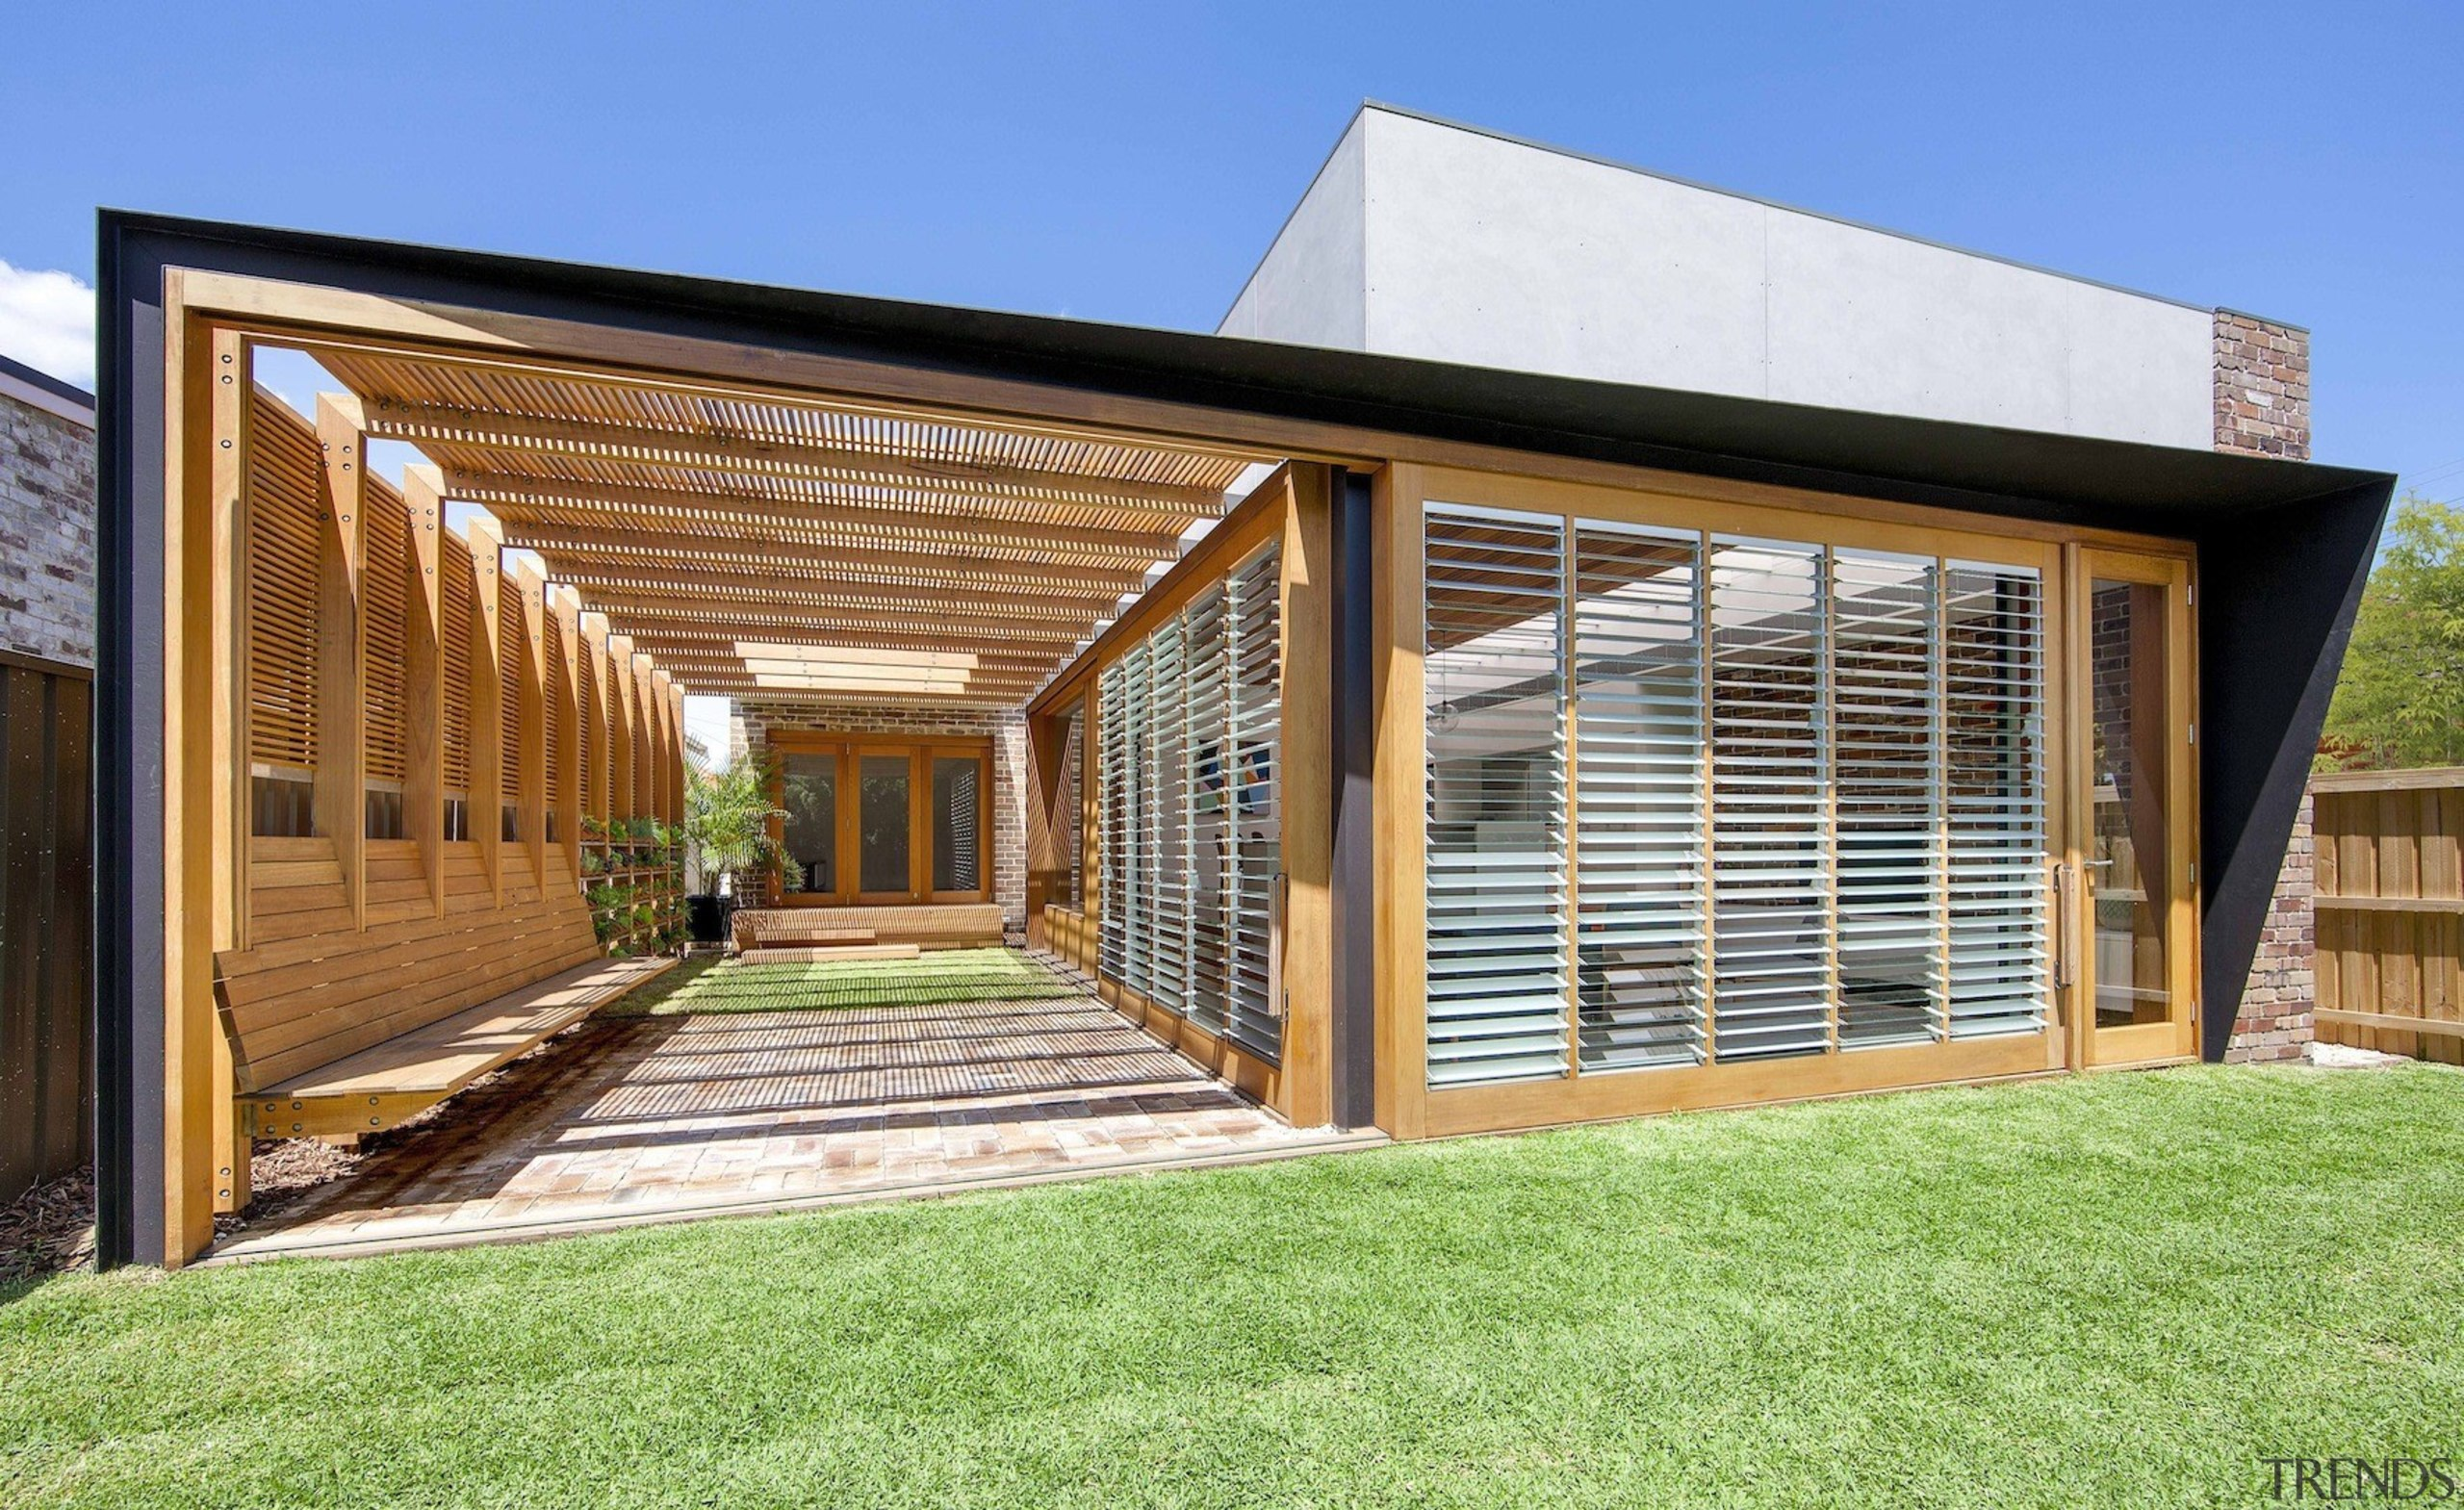 CplusC Architectural Workshop architecture, estate, facade, home, house, property, real estate, residential area, siding, window